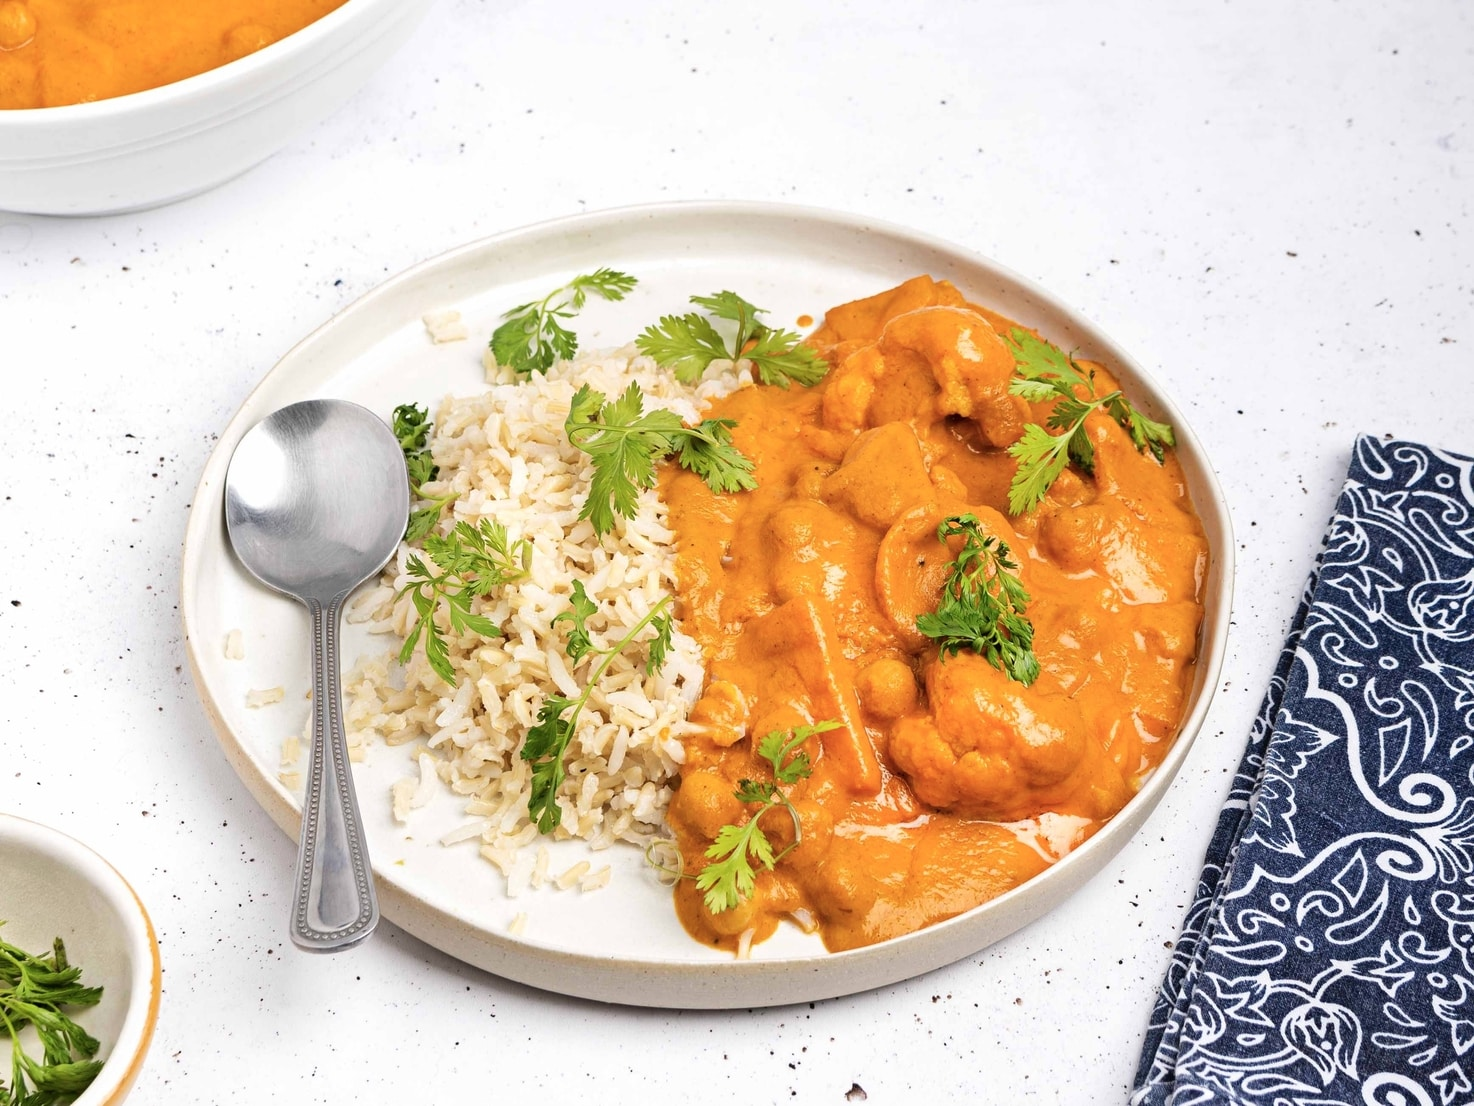 The vegan tikka masala is served on a plate with rice and garnished with parsley. The plate has a spoon on it, there is a tea towel in the right hand corner and you can see a bowl of parsley and another bowl of tikka masala in the left hand corners   Hurry The Food Up